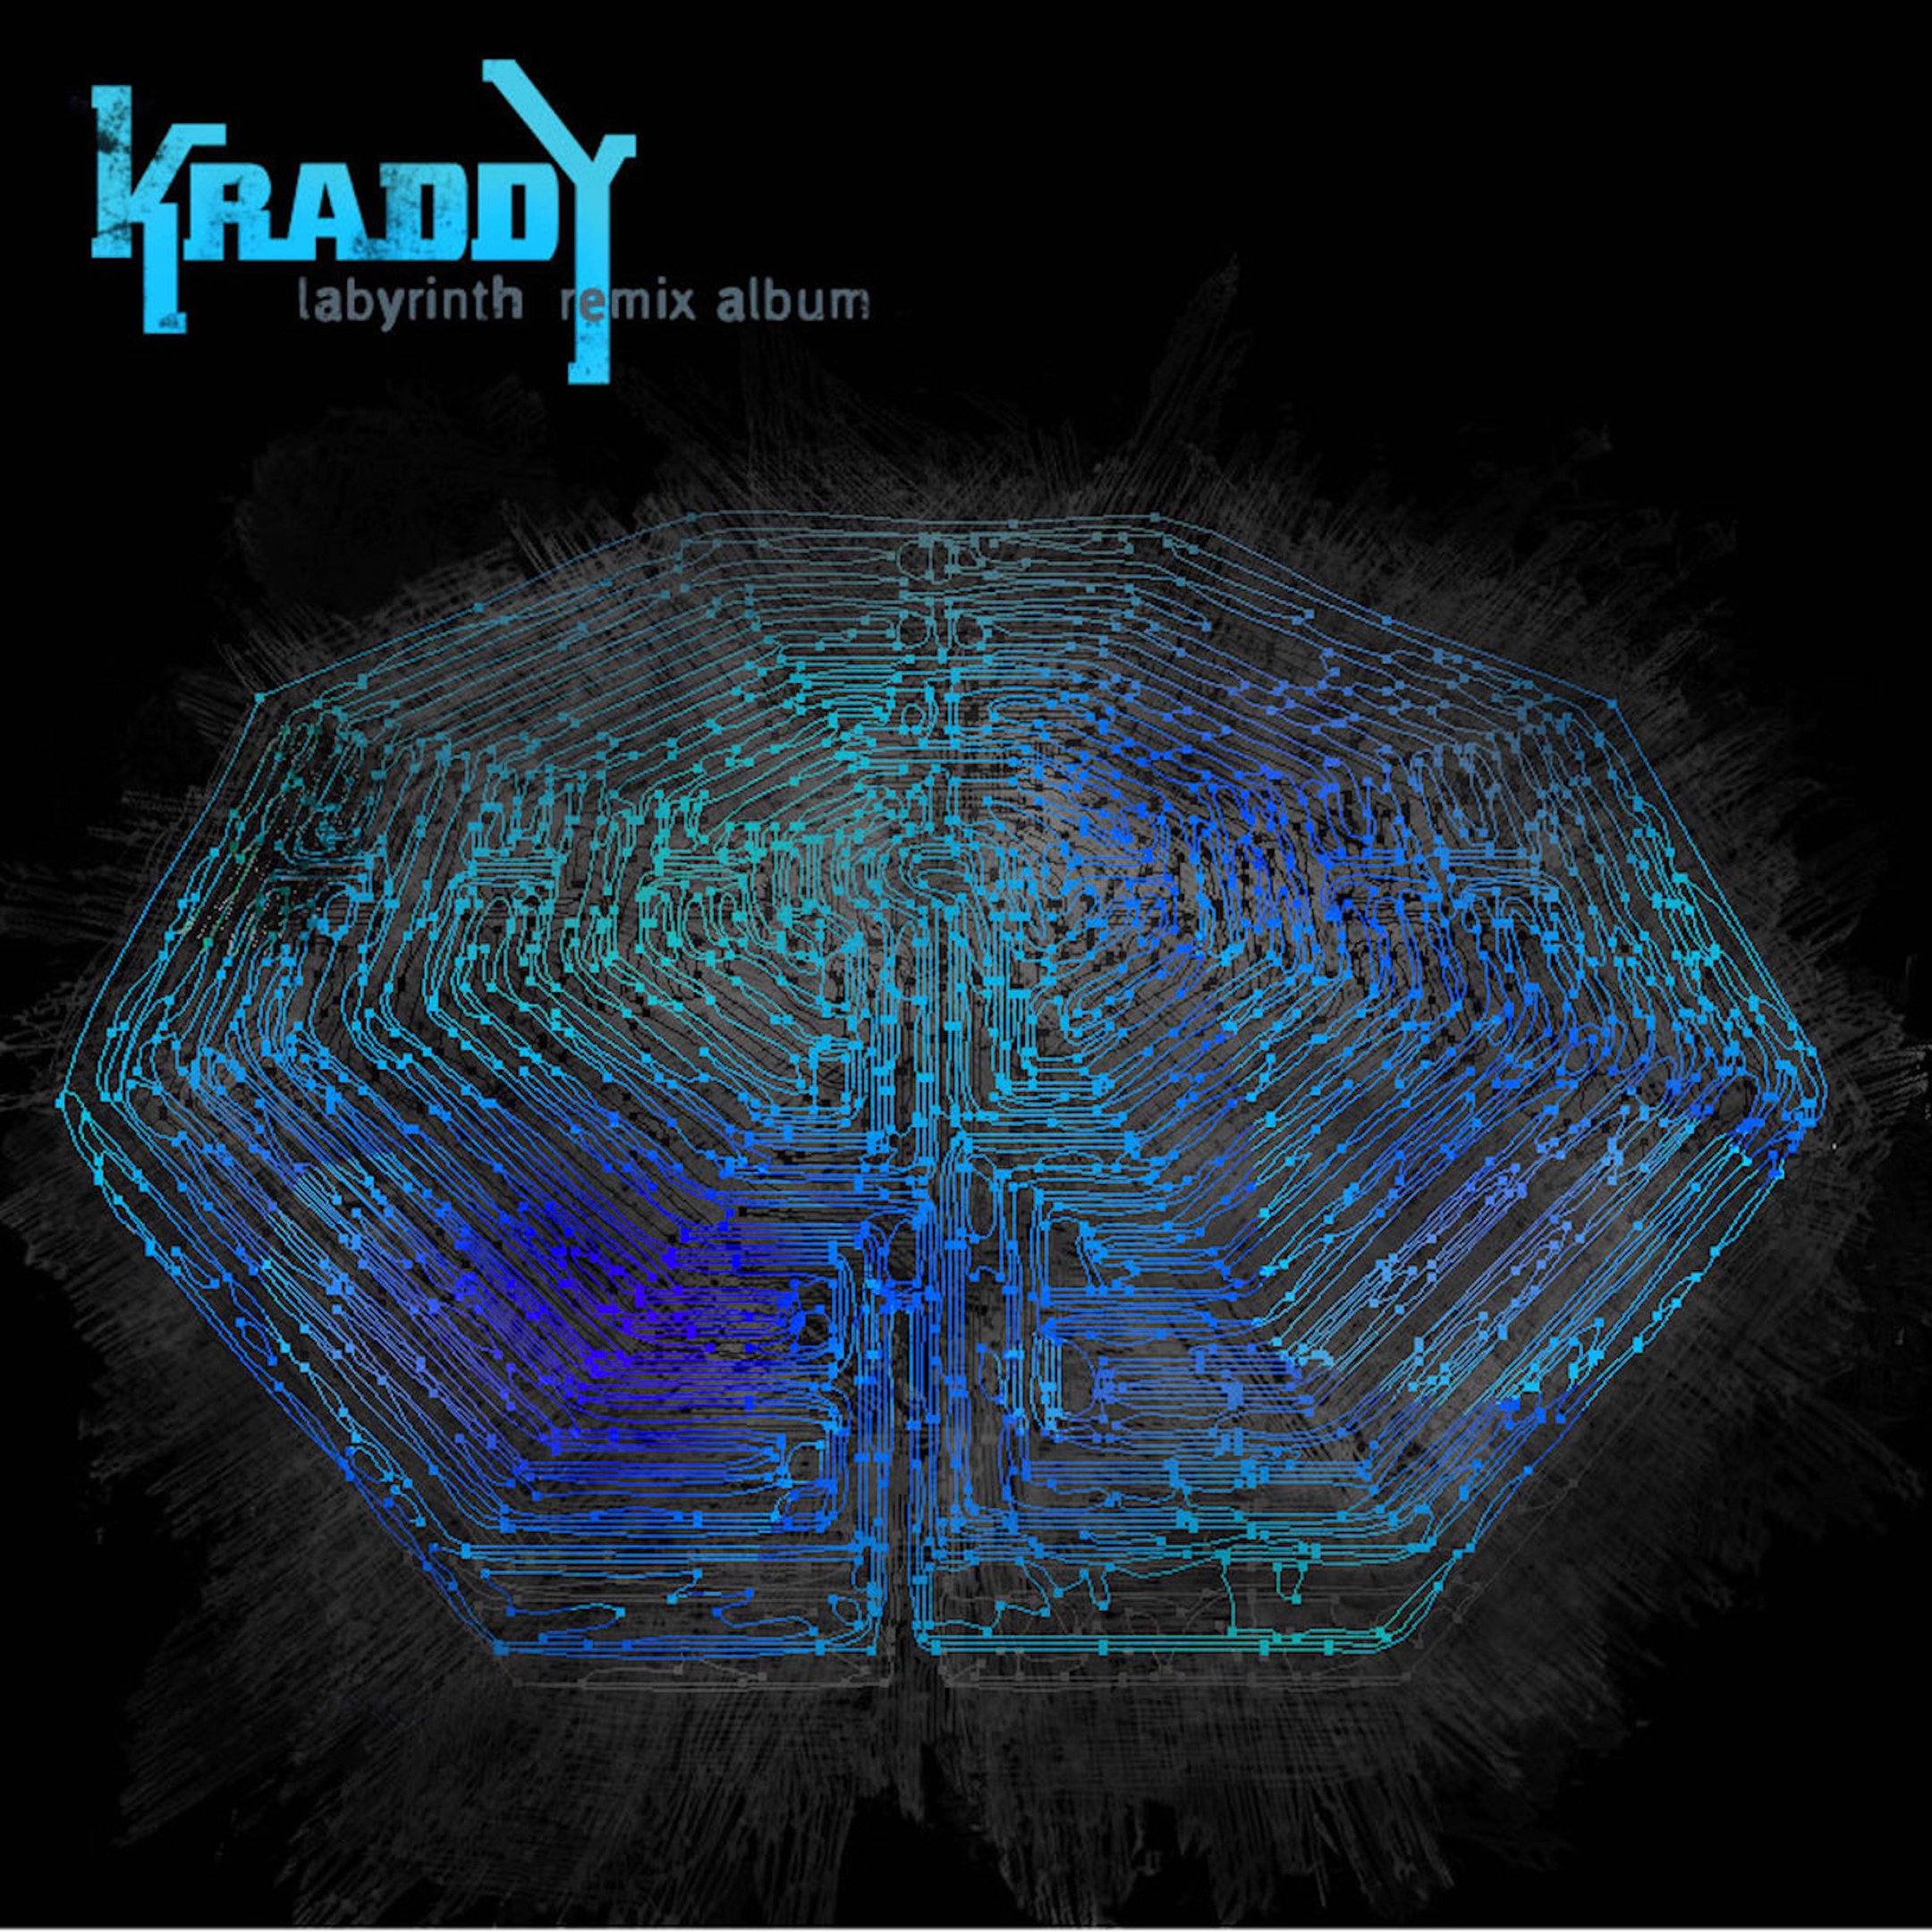 Kraddy album Labyrinth Remix Project